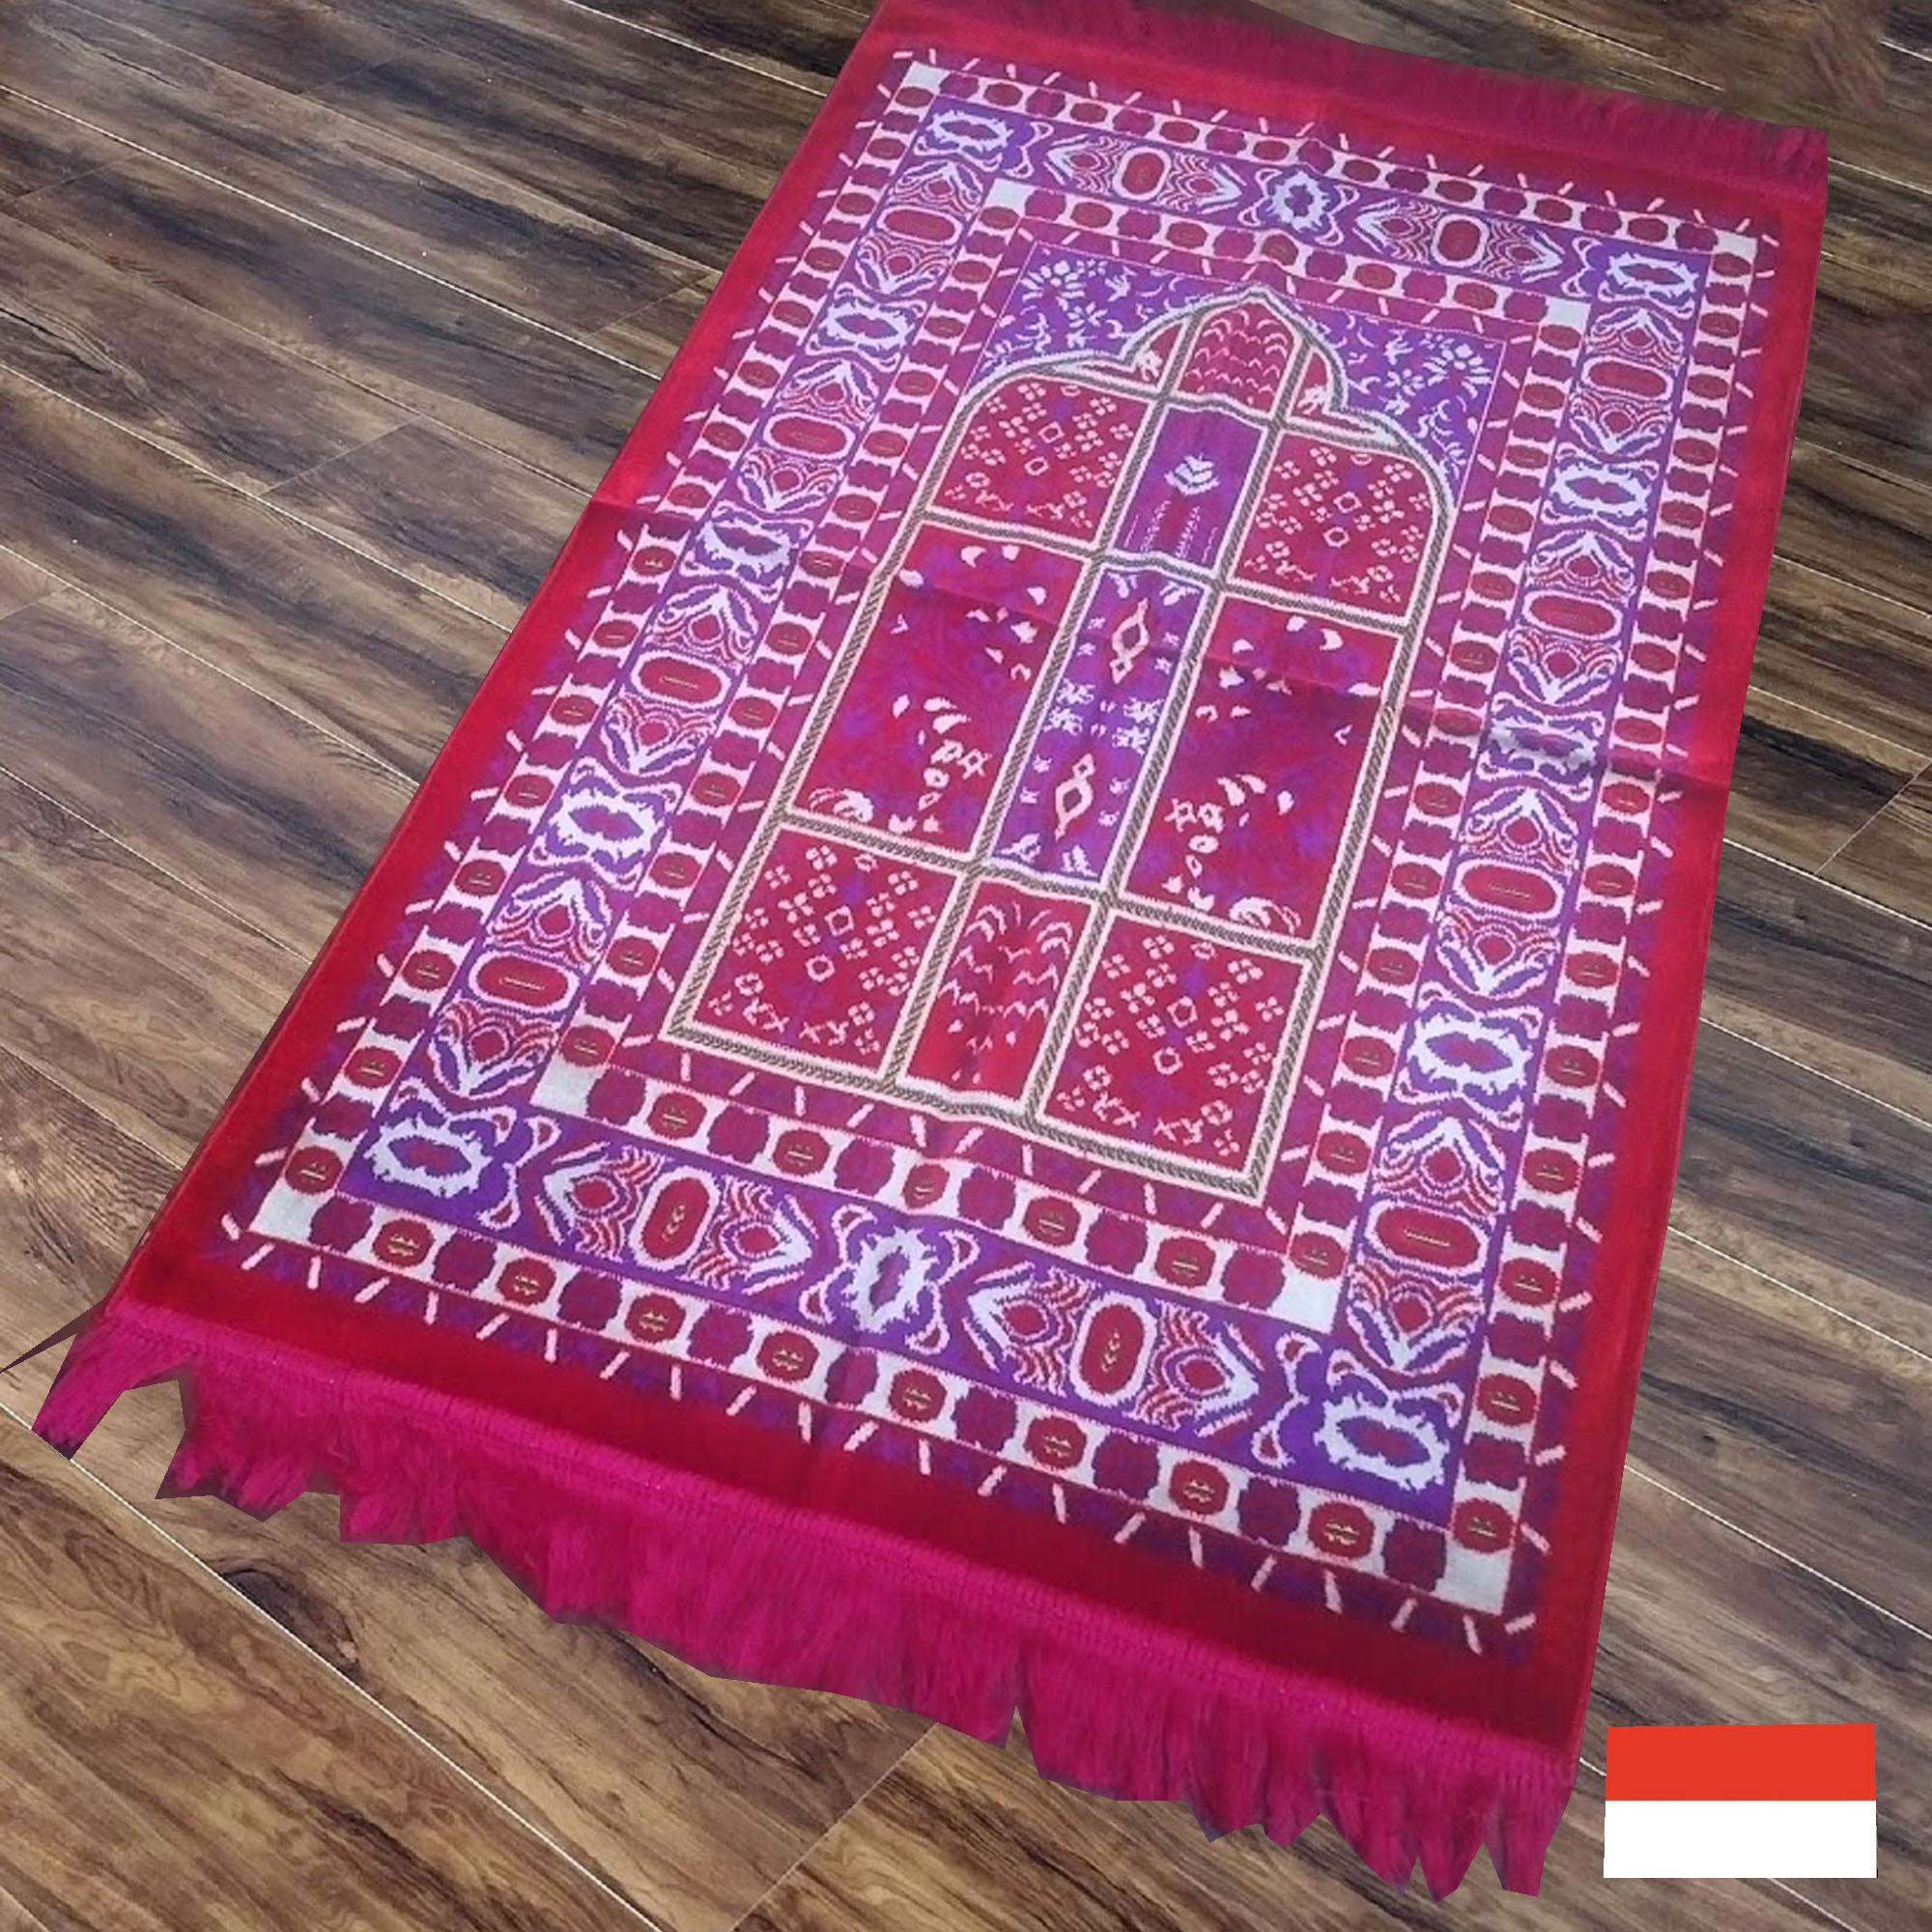 Harga Sajadah Elektronik Terbaru 2018 Pocket Prayer Mat Kompas Nurtex Turki Beludru Bulu Supersoft Normal 70 Cm X 110 Bunga Kotak